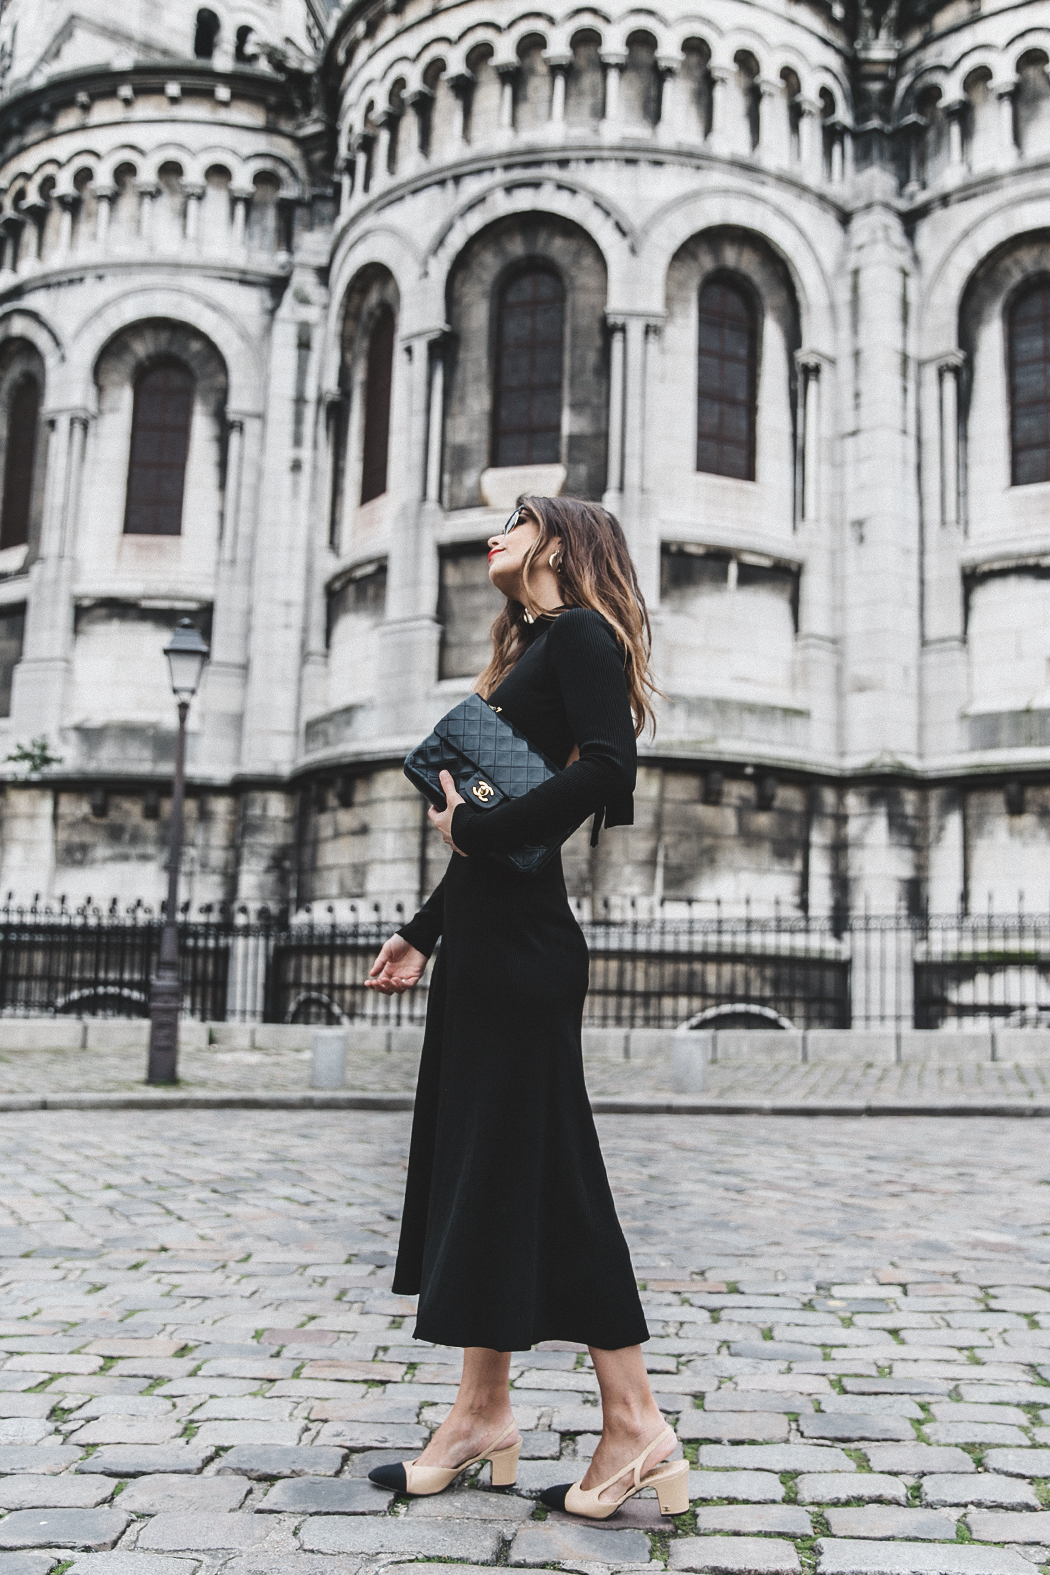 Backless_Dress-Black_Dress-Chanel_Shoes-Paris-PFW-Paris_Fashion_Week_Fall_2016-31